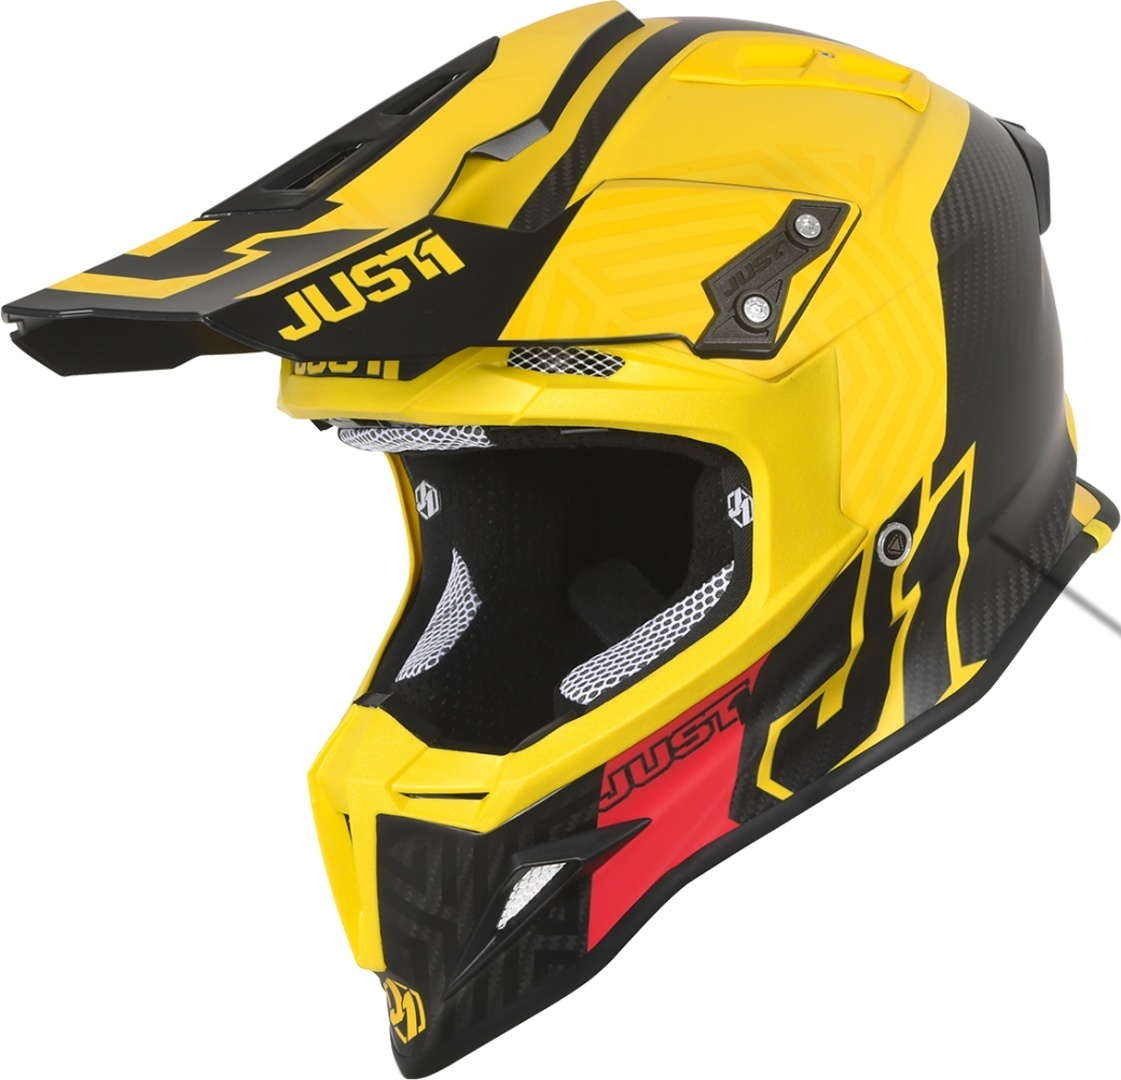 Just1 J12 Syncro Carbon Motocross Helm, schwarz-gelb, Größe S, schwarz-gelb, Größe S